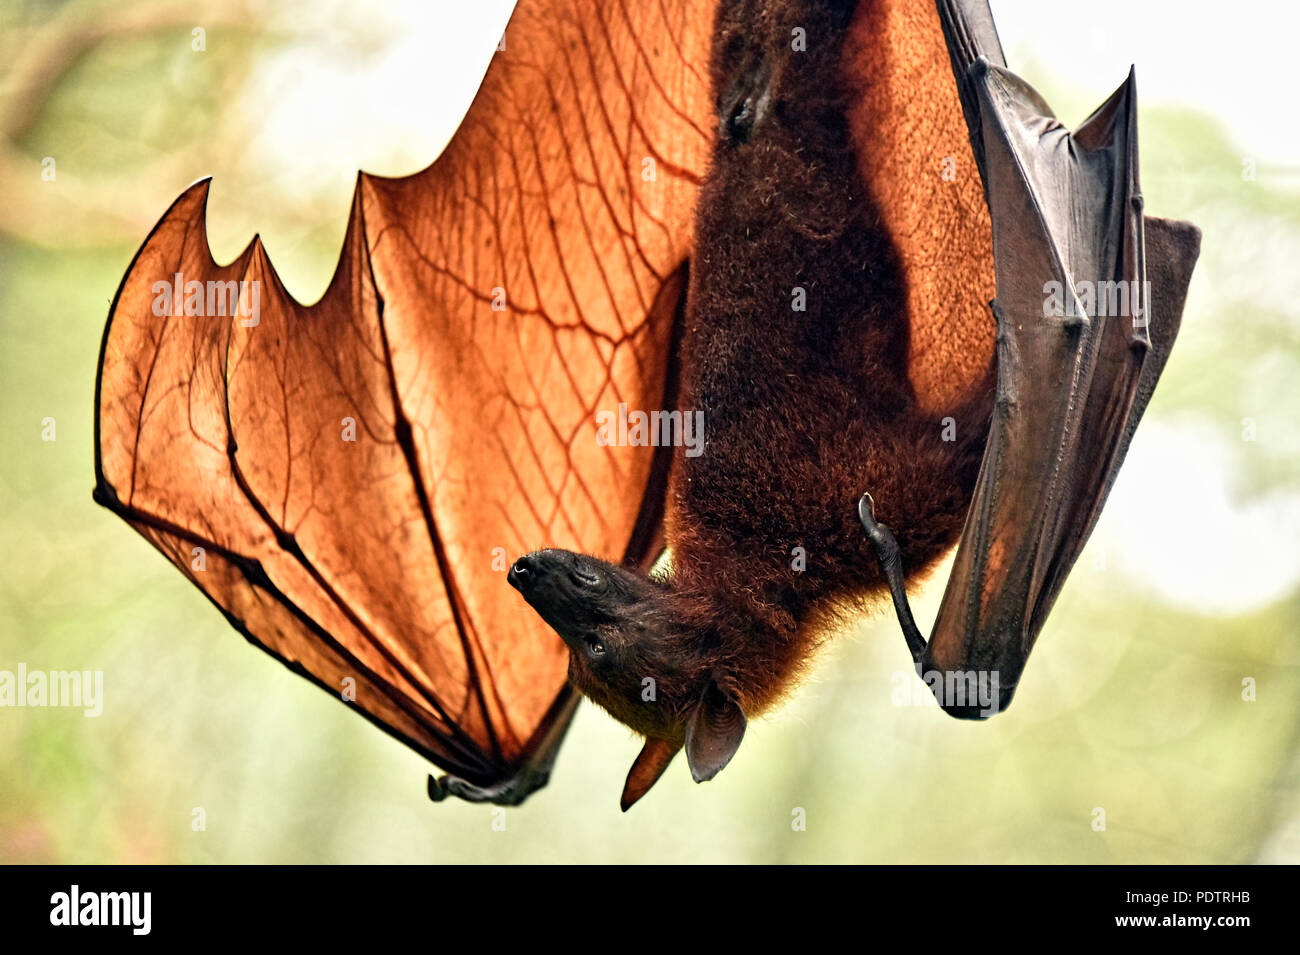 Bats of the genus Pteropus are among the largest bats in the world. They are commonly known as fruit bats or flying foxes. Stock Photo